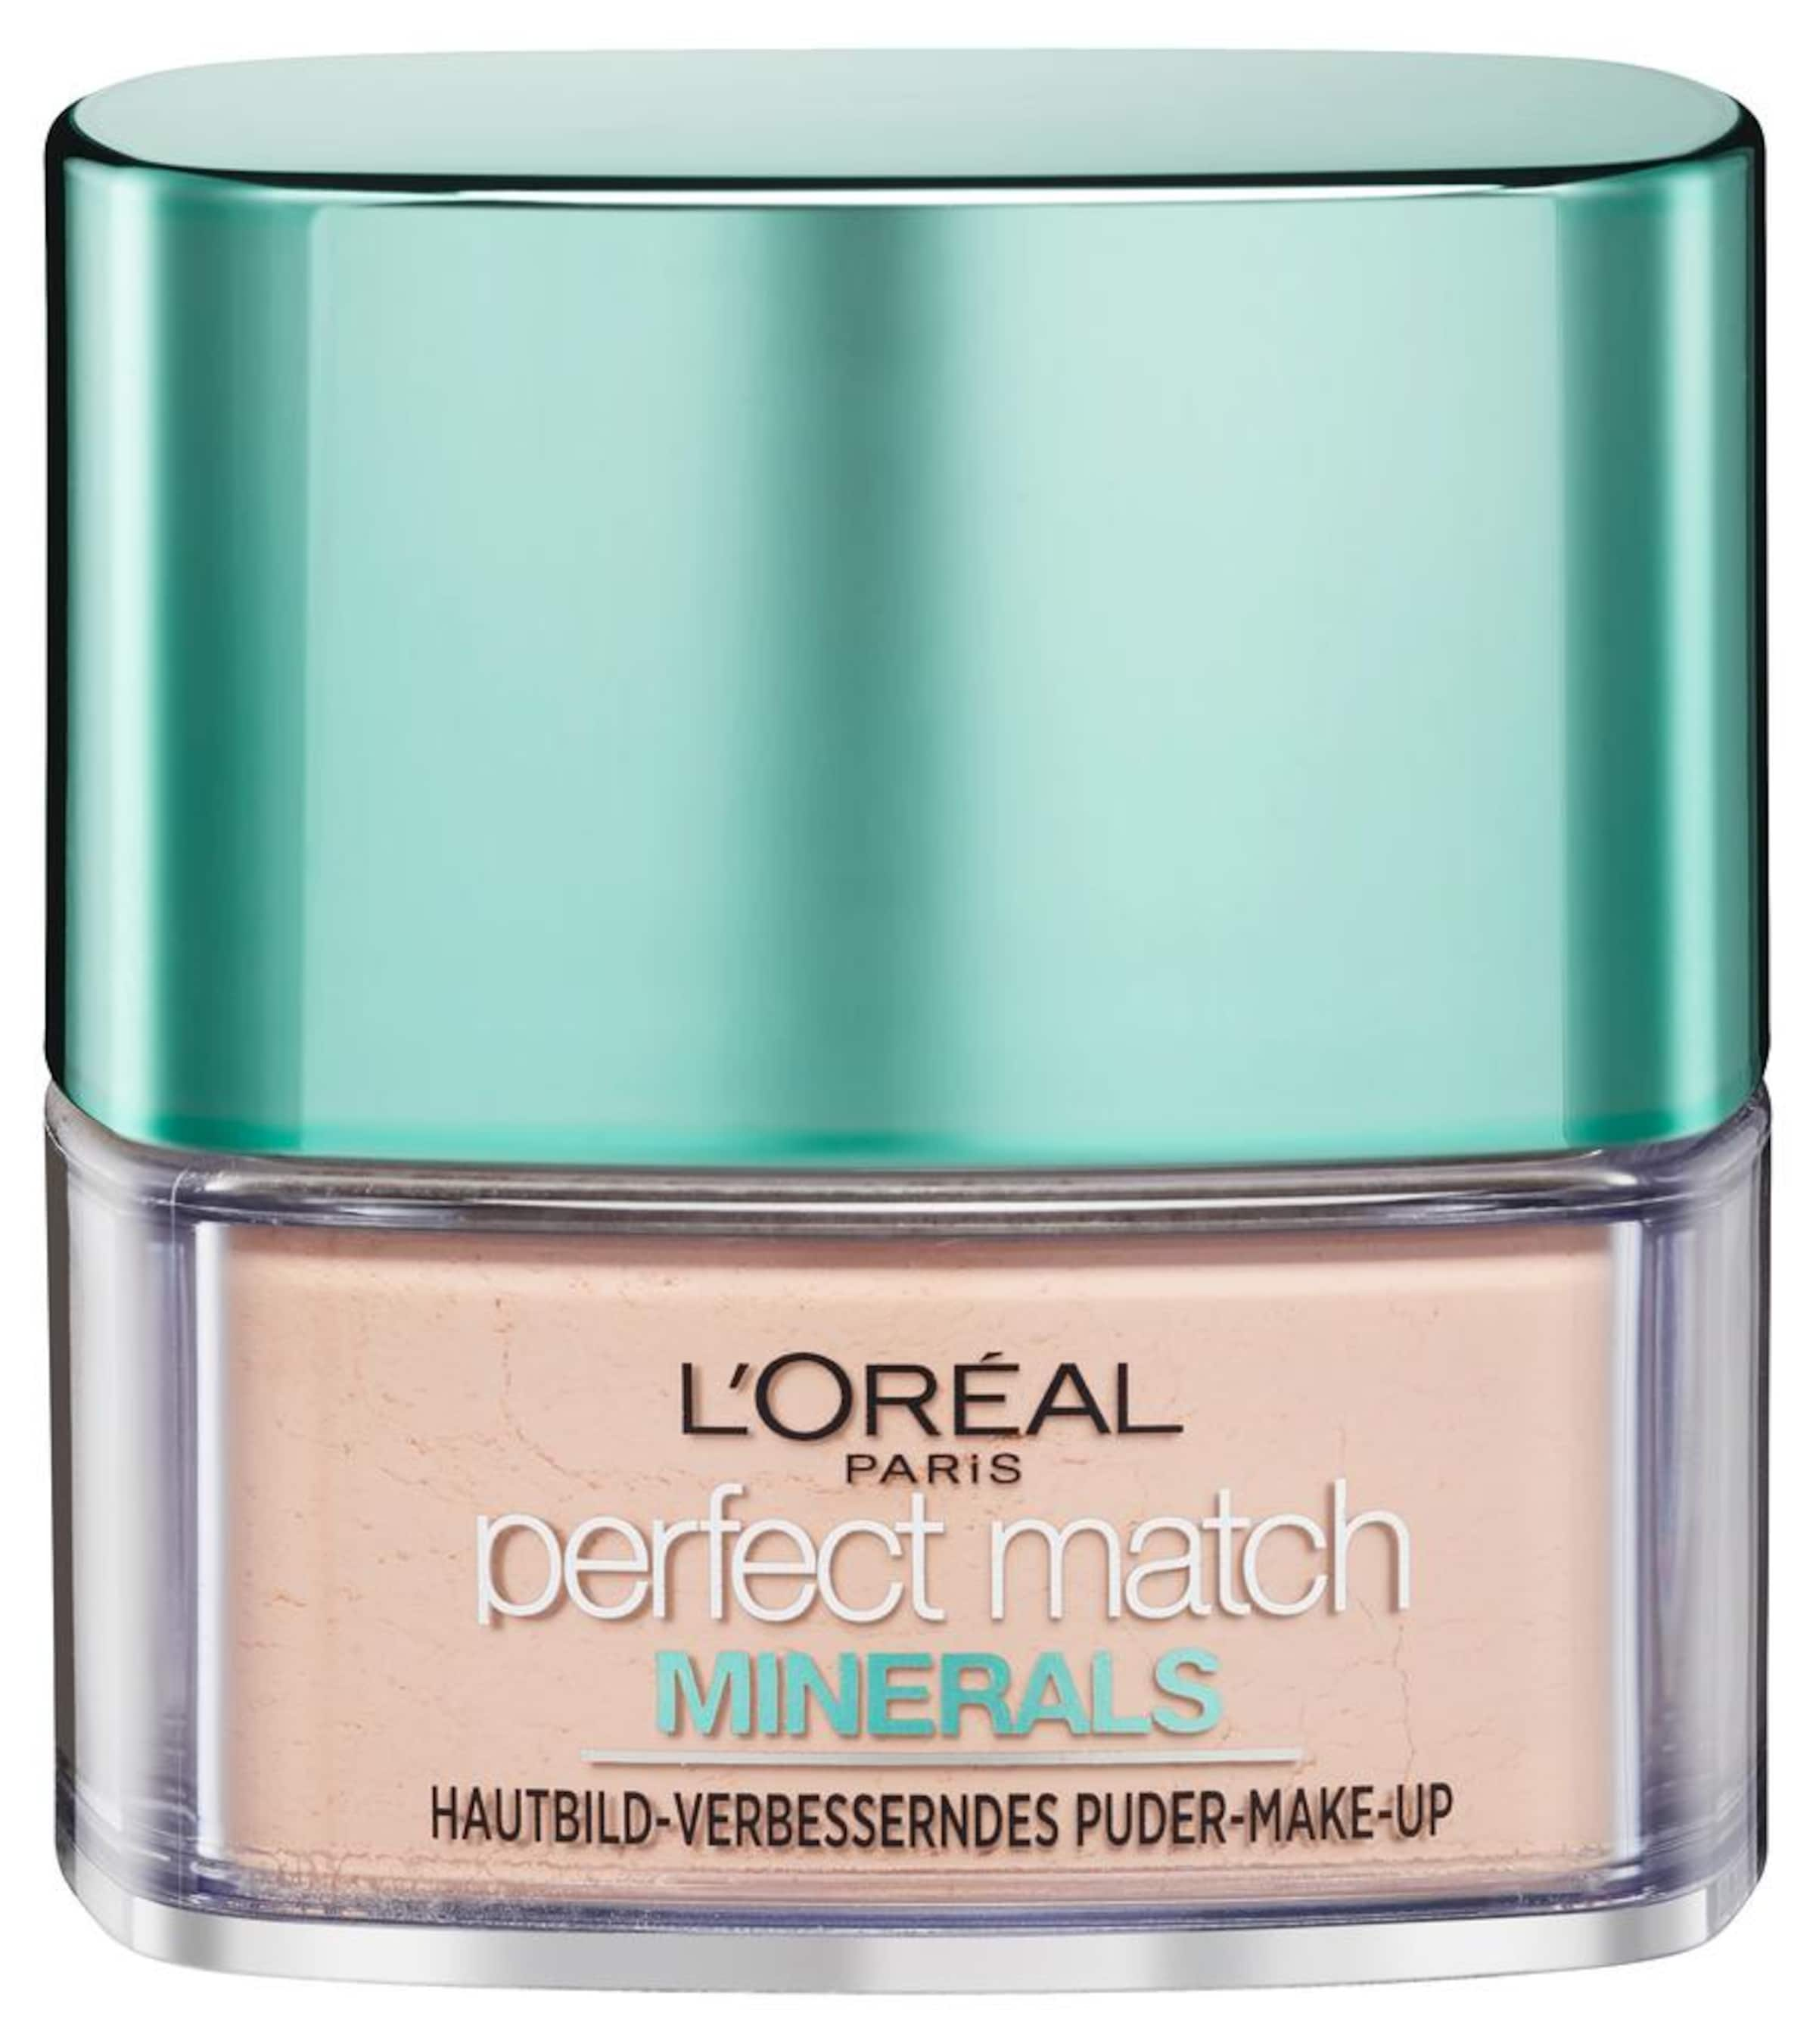 Beige Make In Paris Match L'oréal Puder' 'perfect Minerals up LqSUpGMjVz